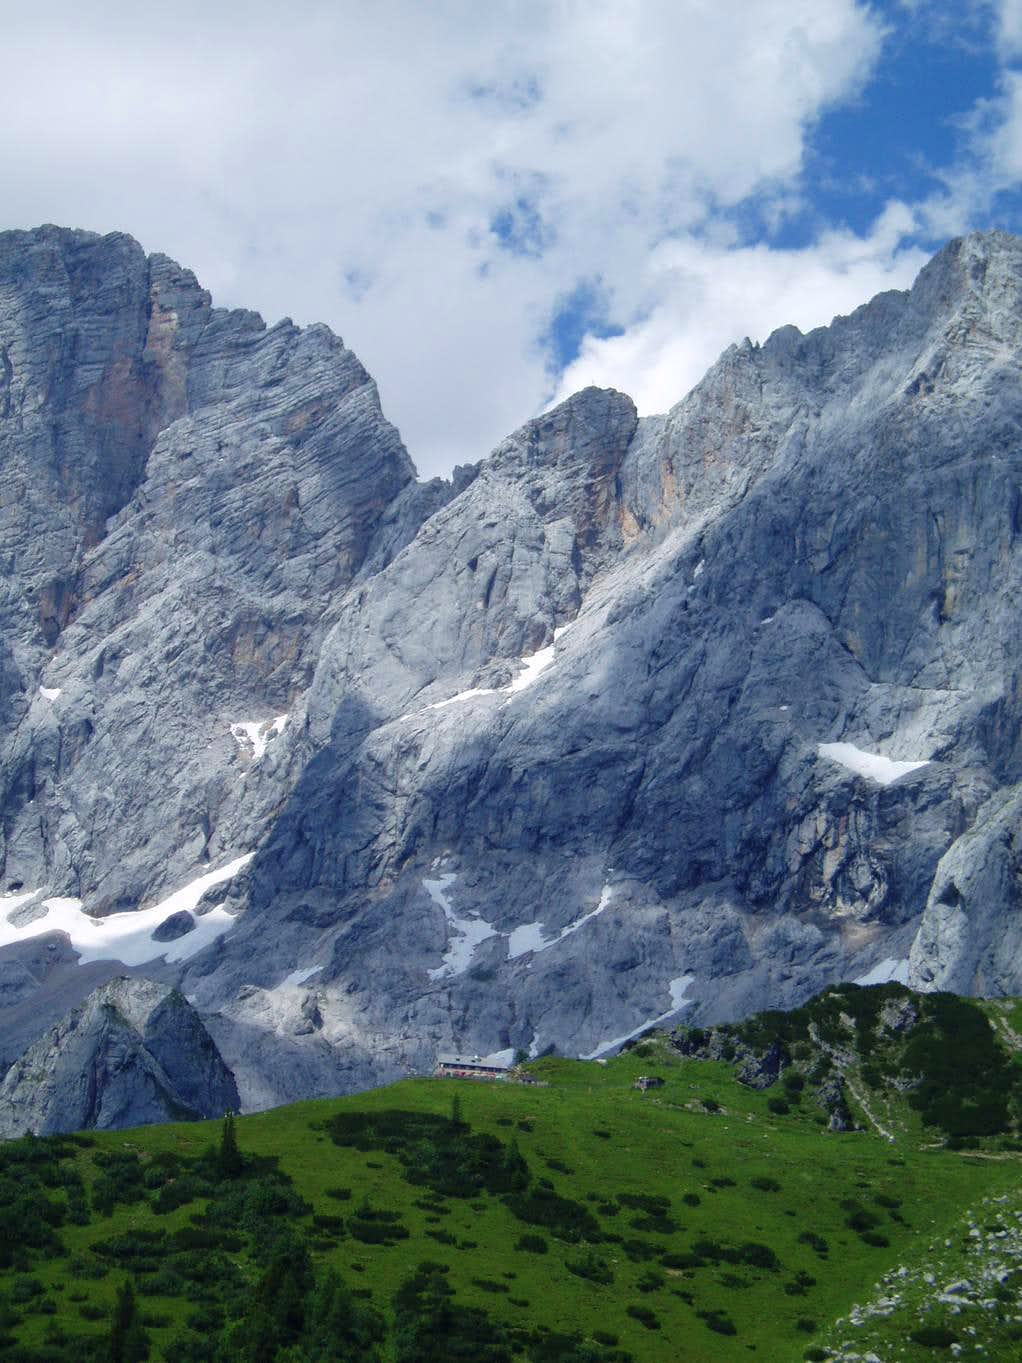 A final look back at the Dachstein Südwand